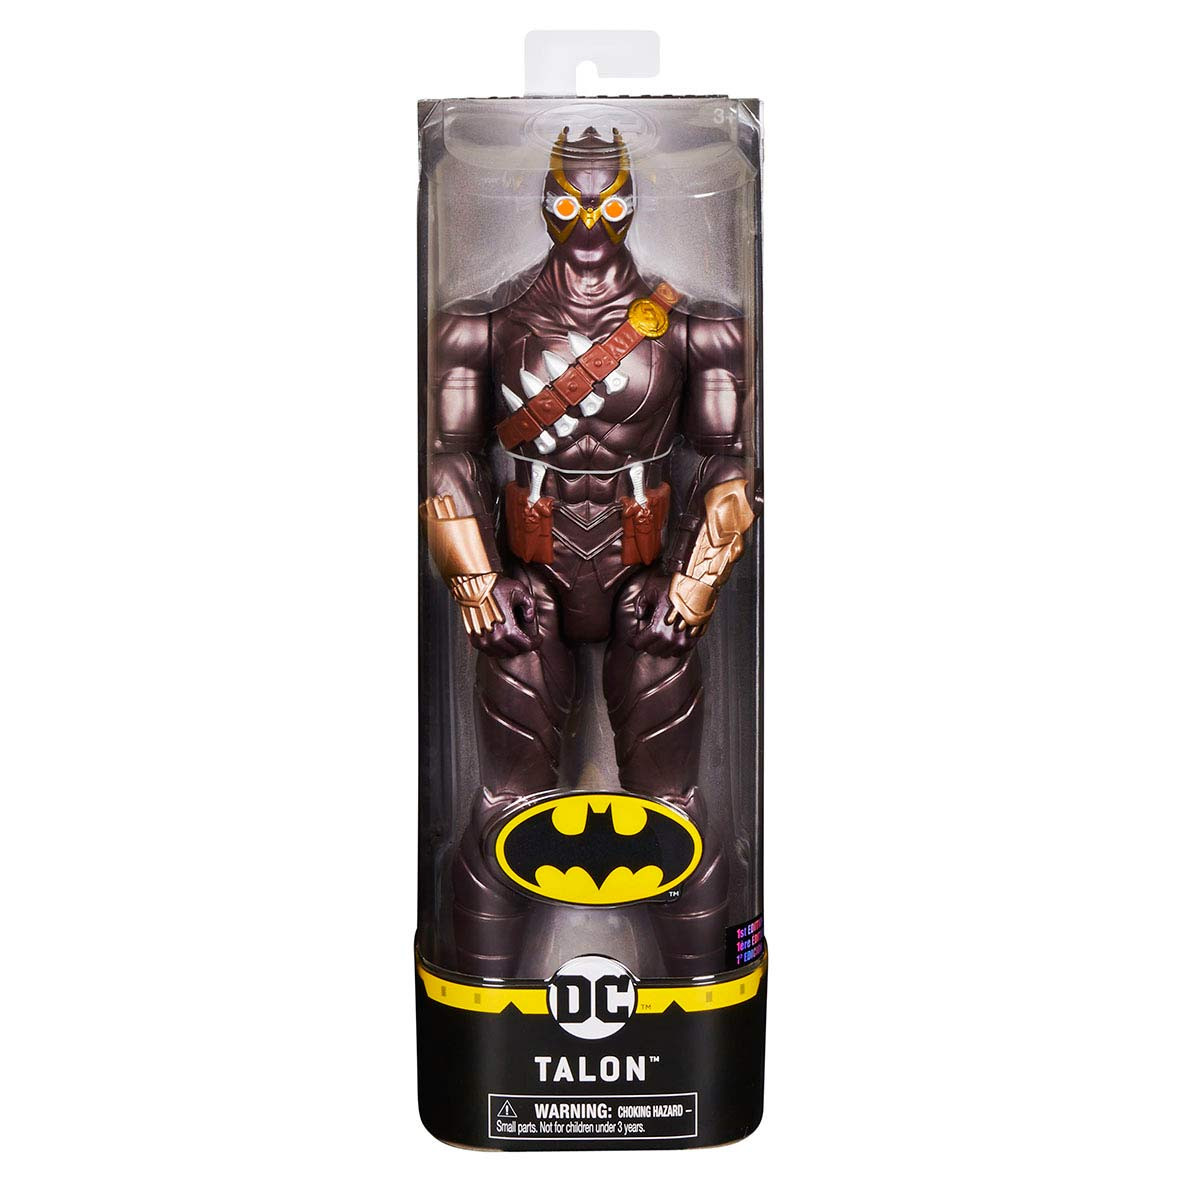 Barman Figura XL Talon